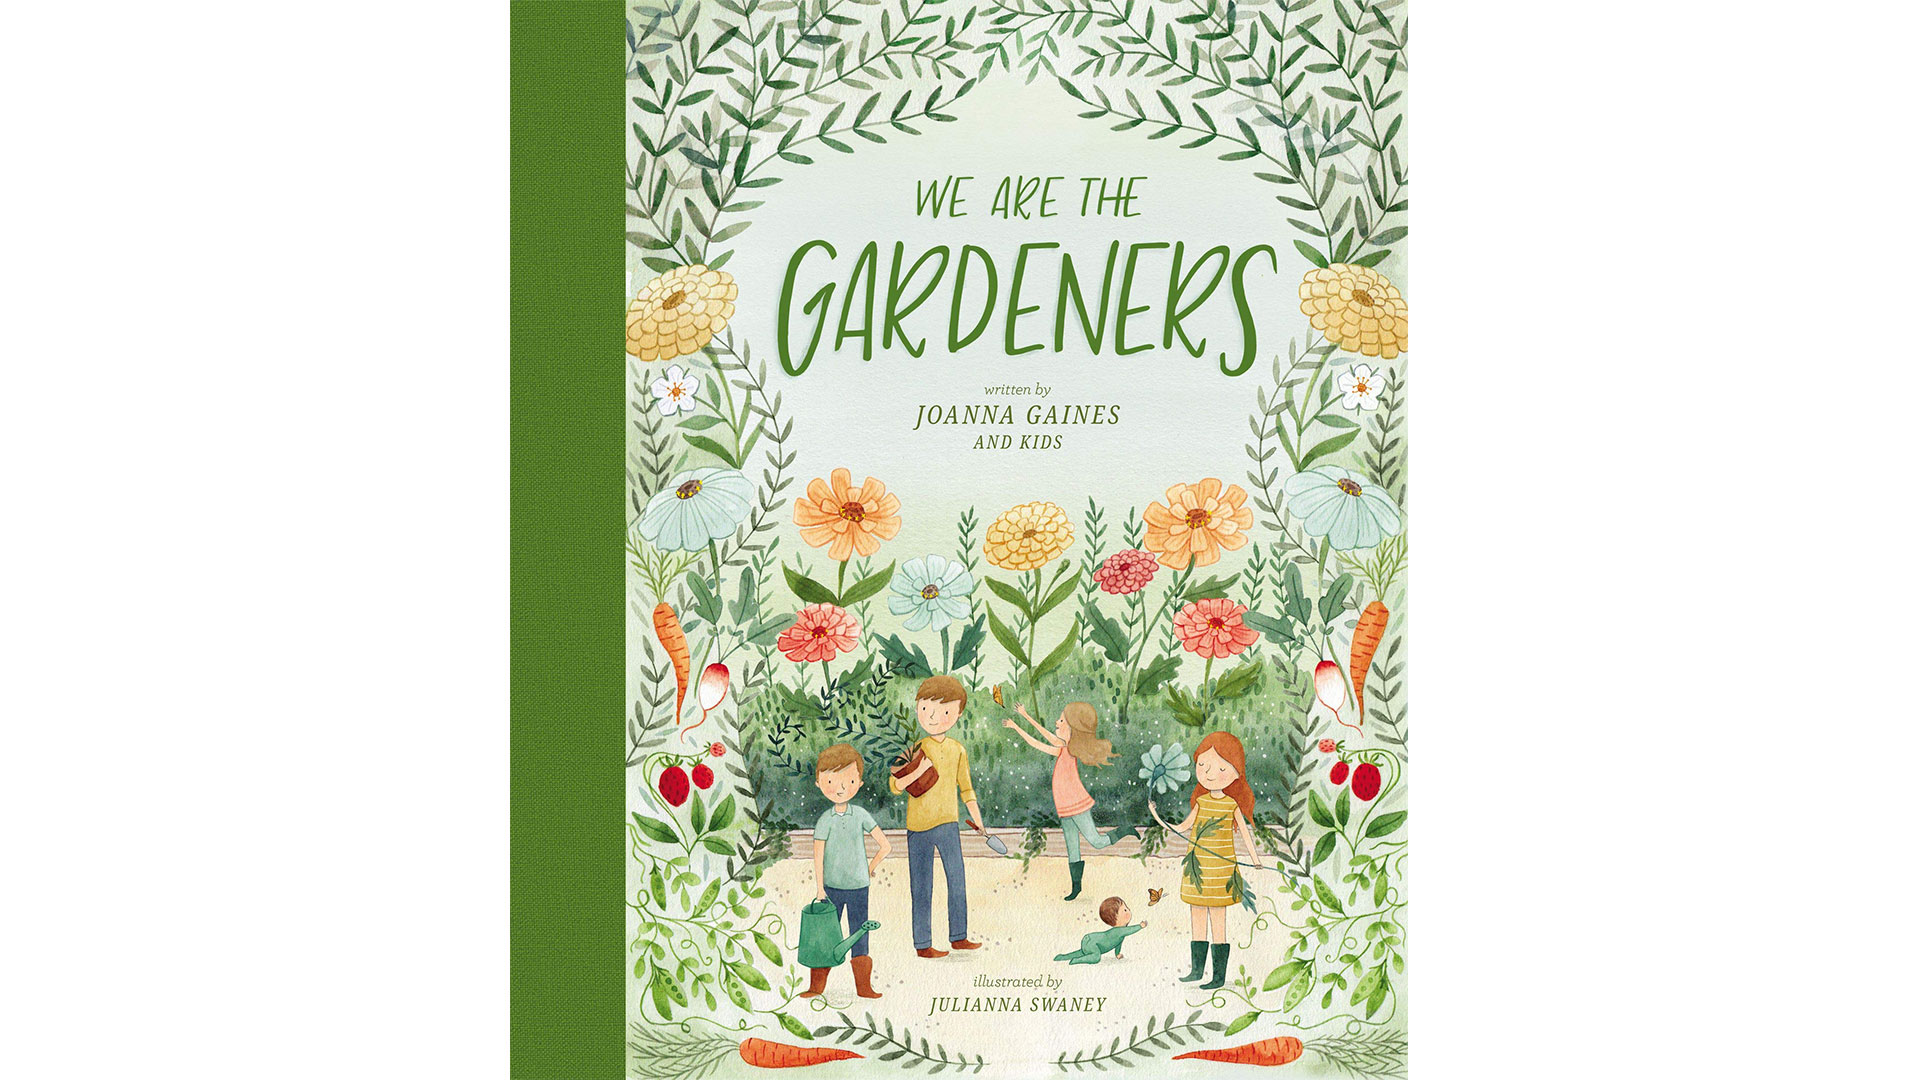 Joanna Gaines Children's Book We Are the Gardeners